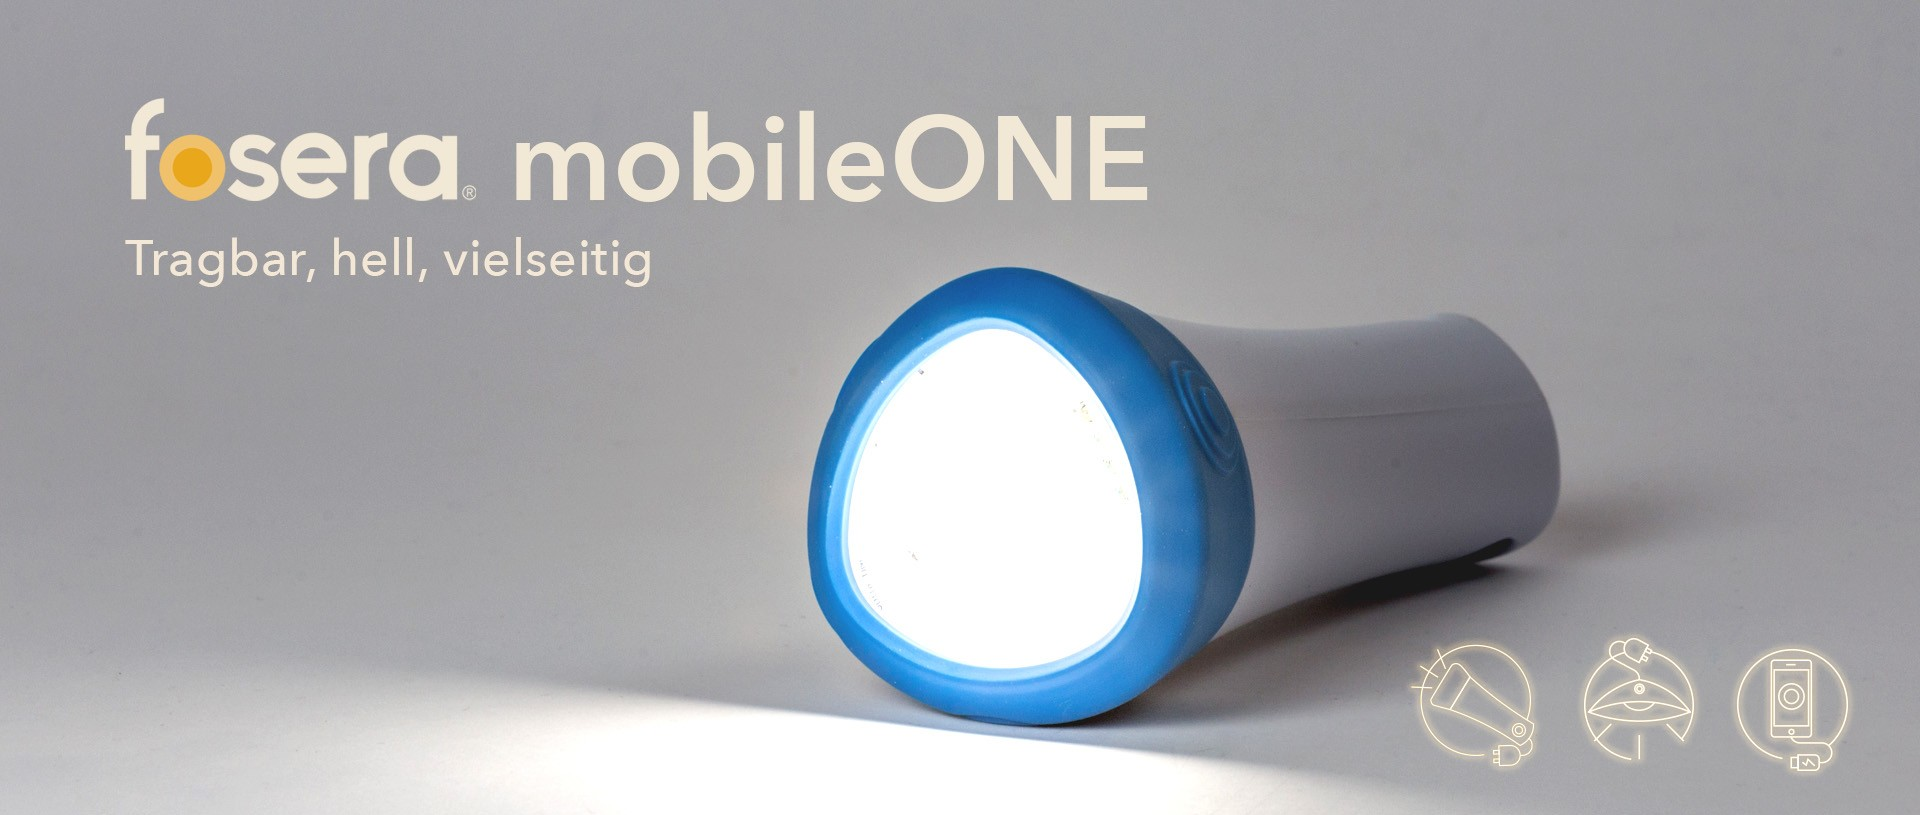 fosera. Mobile ONE Solarsystem Licht